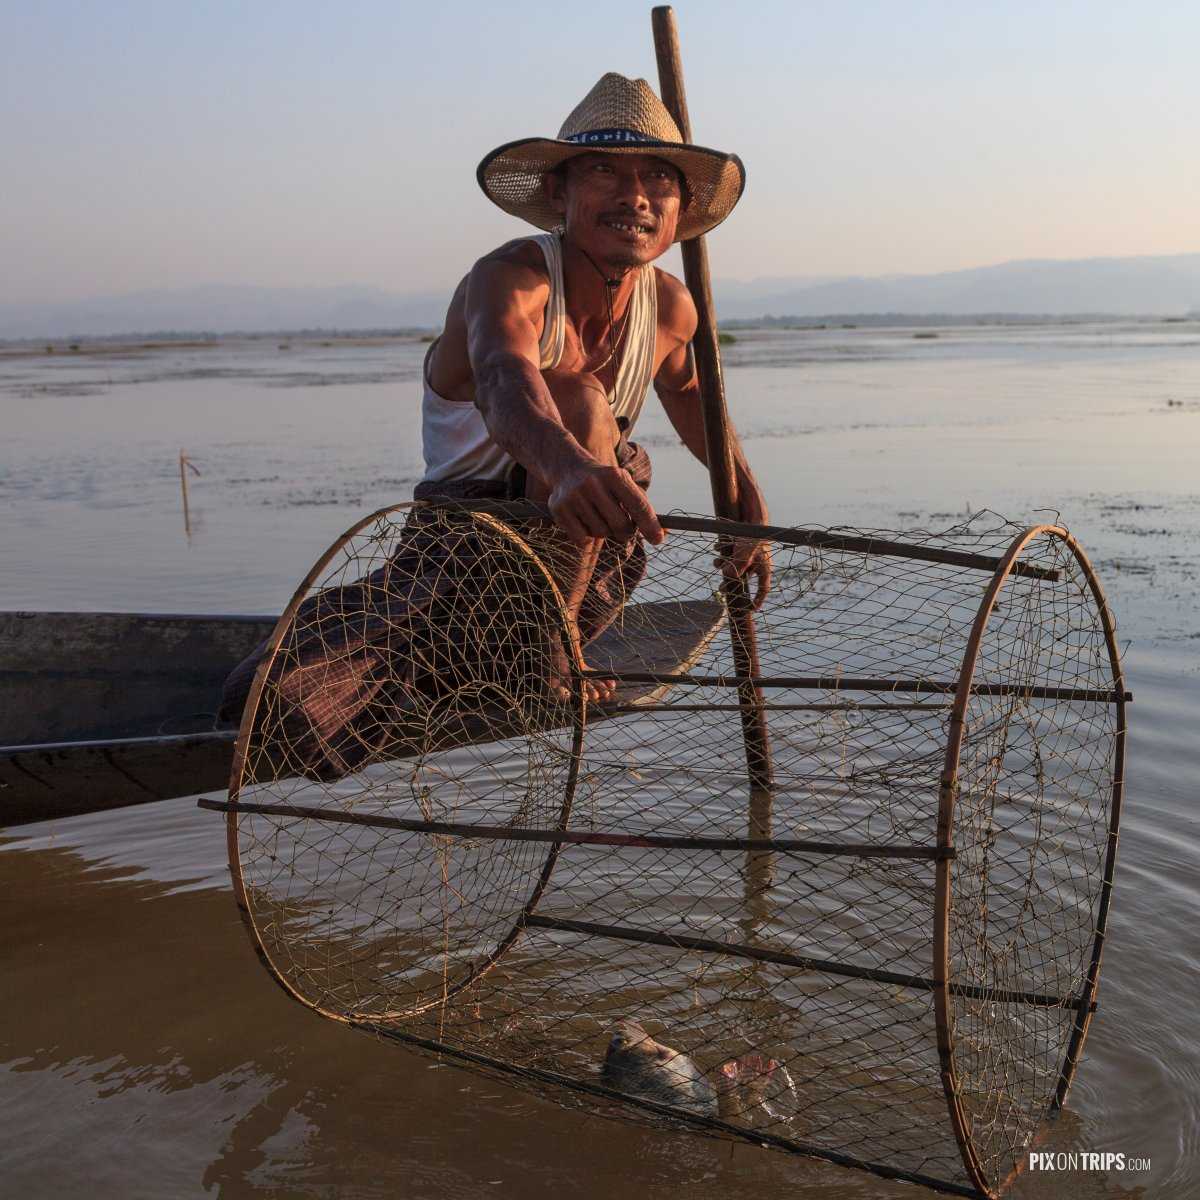 Fisherman shows catch, Lake Inle, Myanmar - Pix on Trips